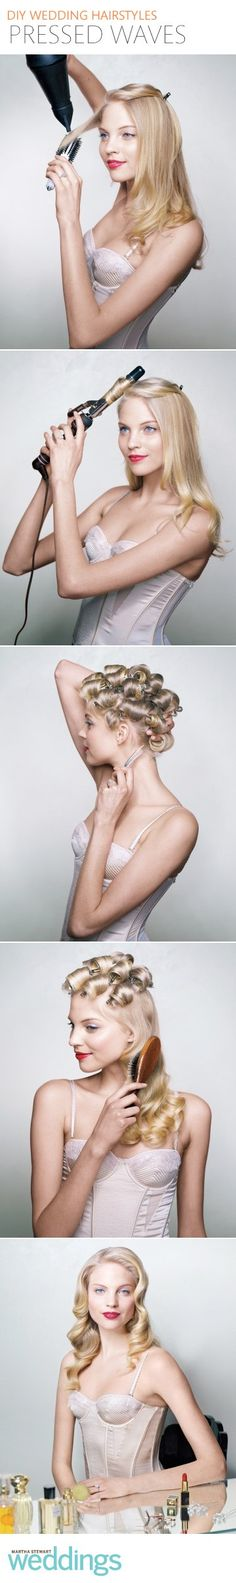 The perfect tutorial for vintage old holywood waves and curls, another variation would be to start off with damp hair and distribute mousse through it, then part it deep to one side and put rollers in the hair starting at the part. Let it air dry or use a hair dryer and when you take them out brush out the curls.